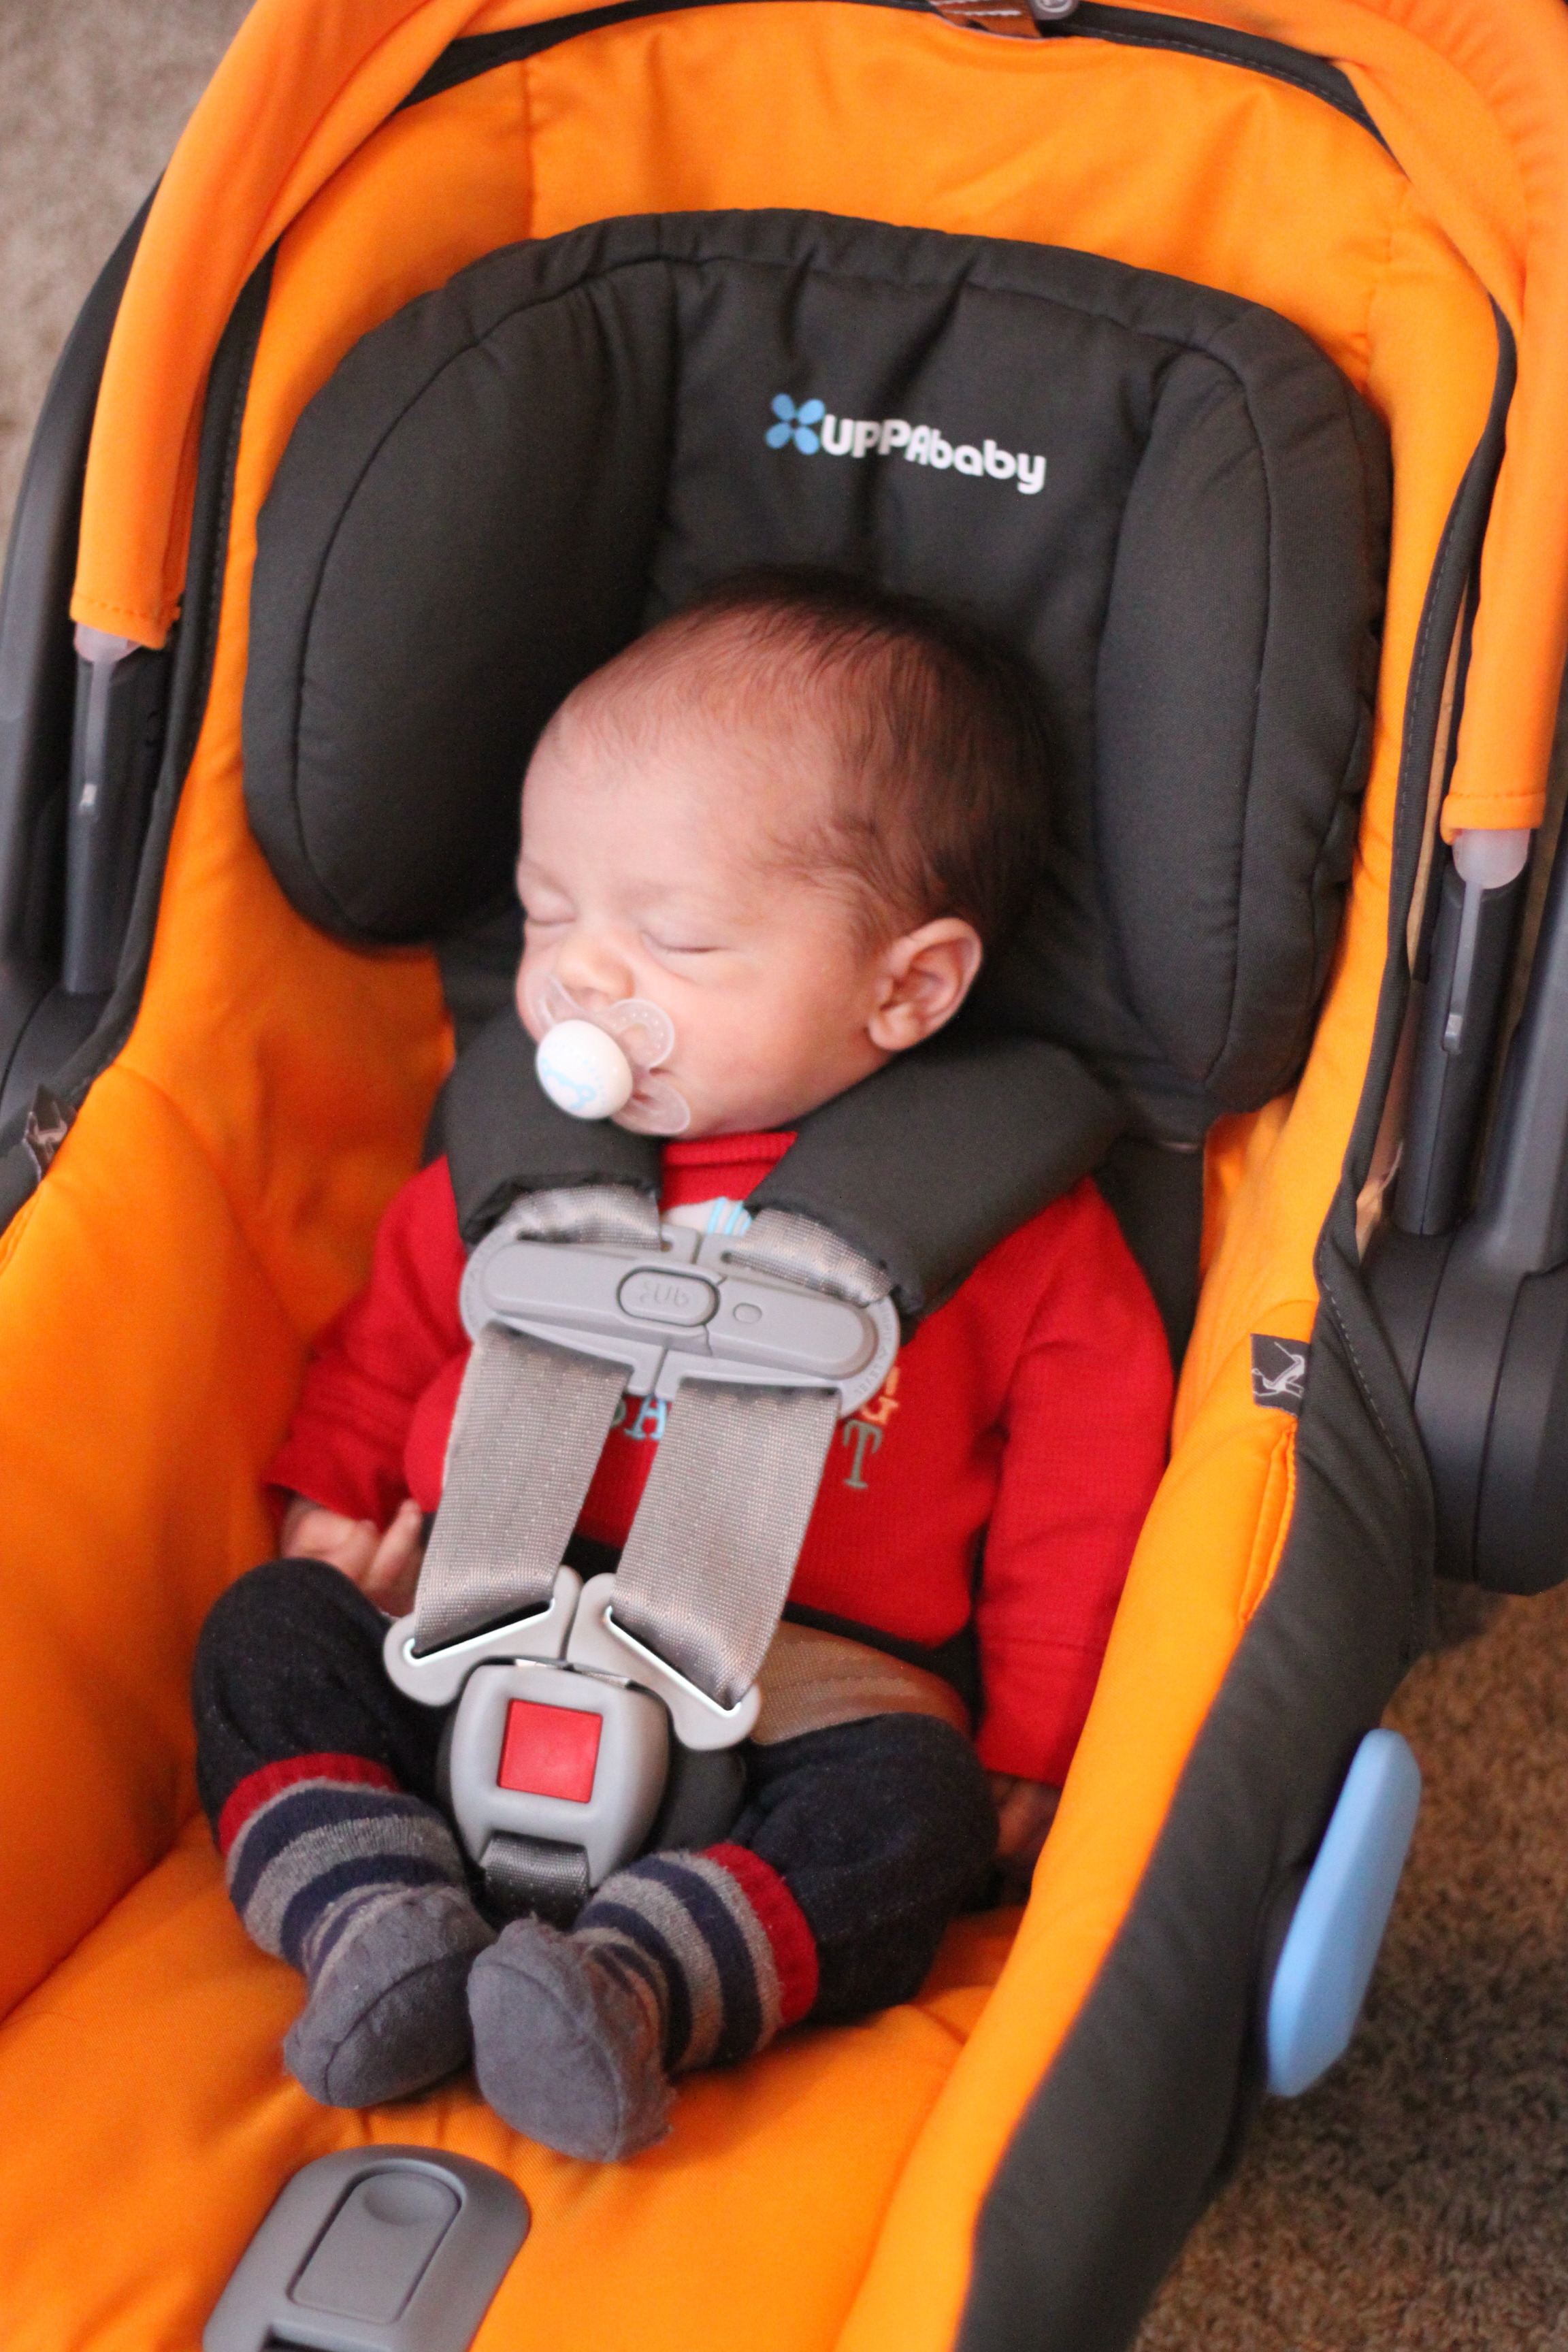 Babies Car Seat Covers Carseatblog The Most Trusted Source For Car Seat Reviews